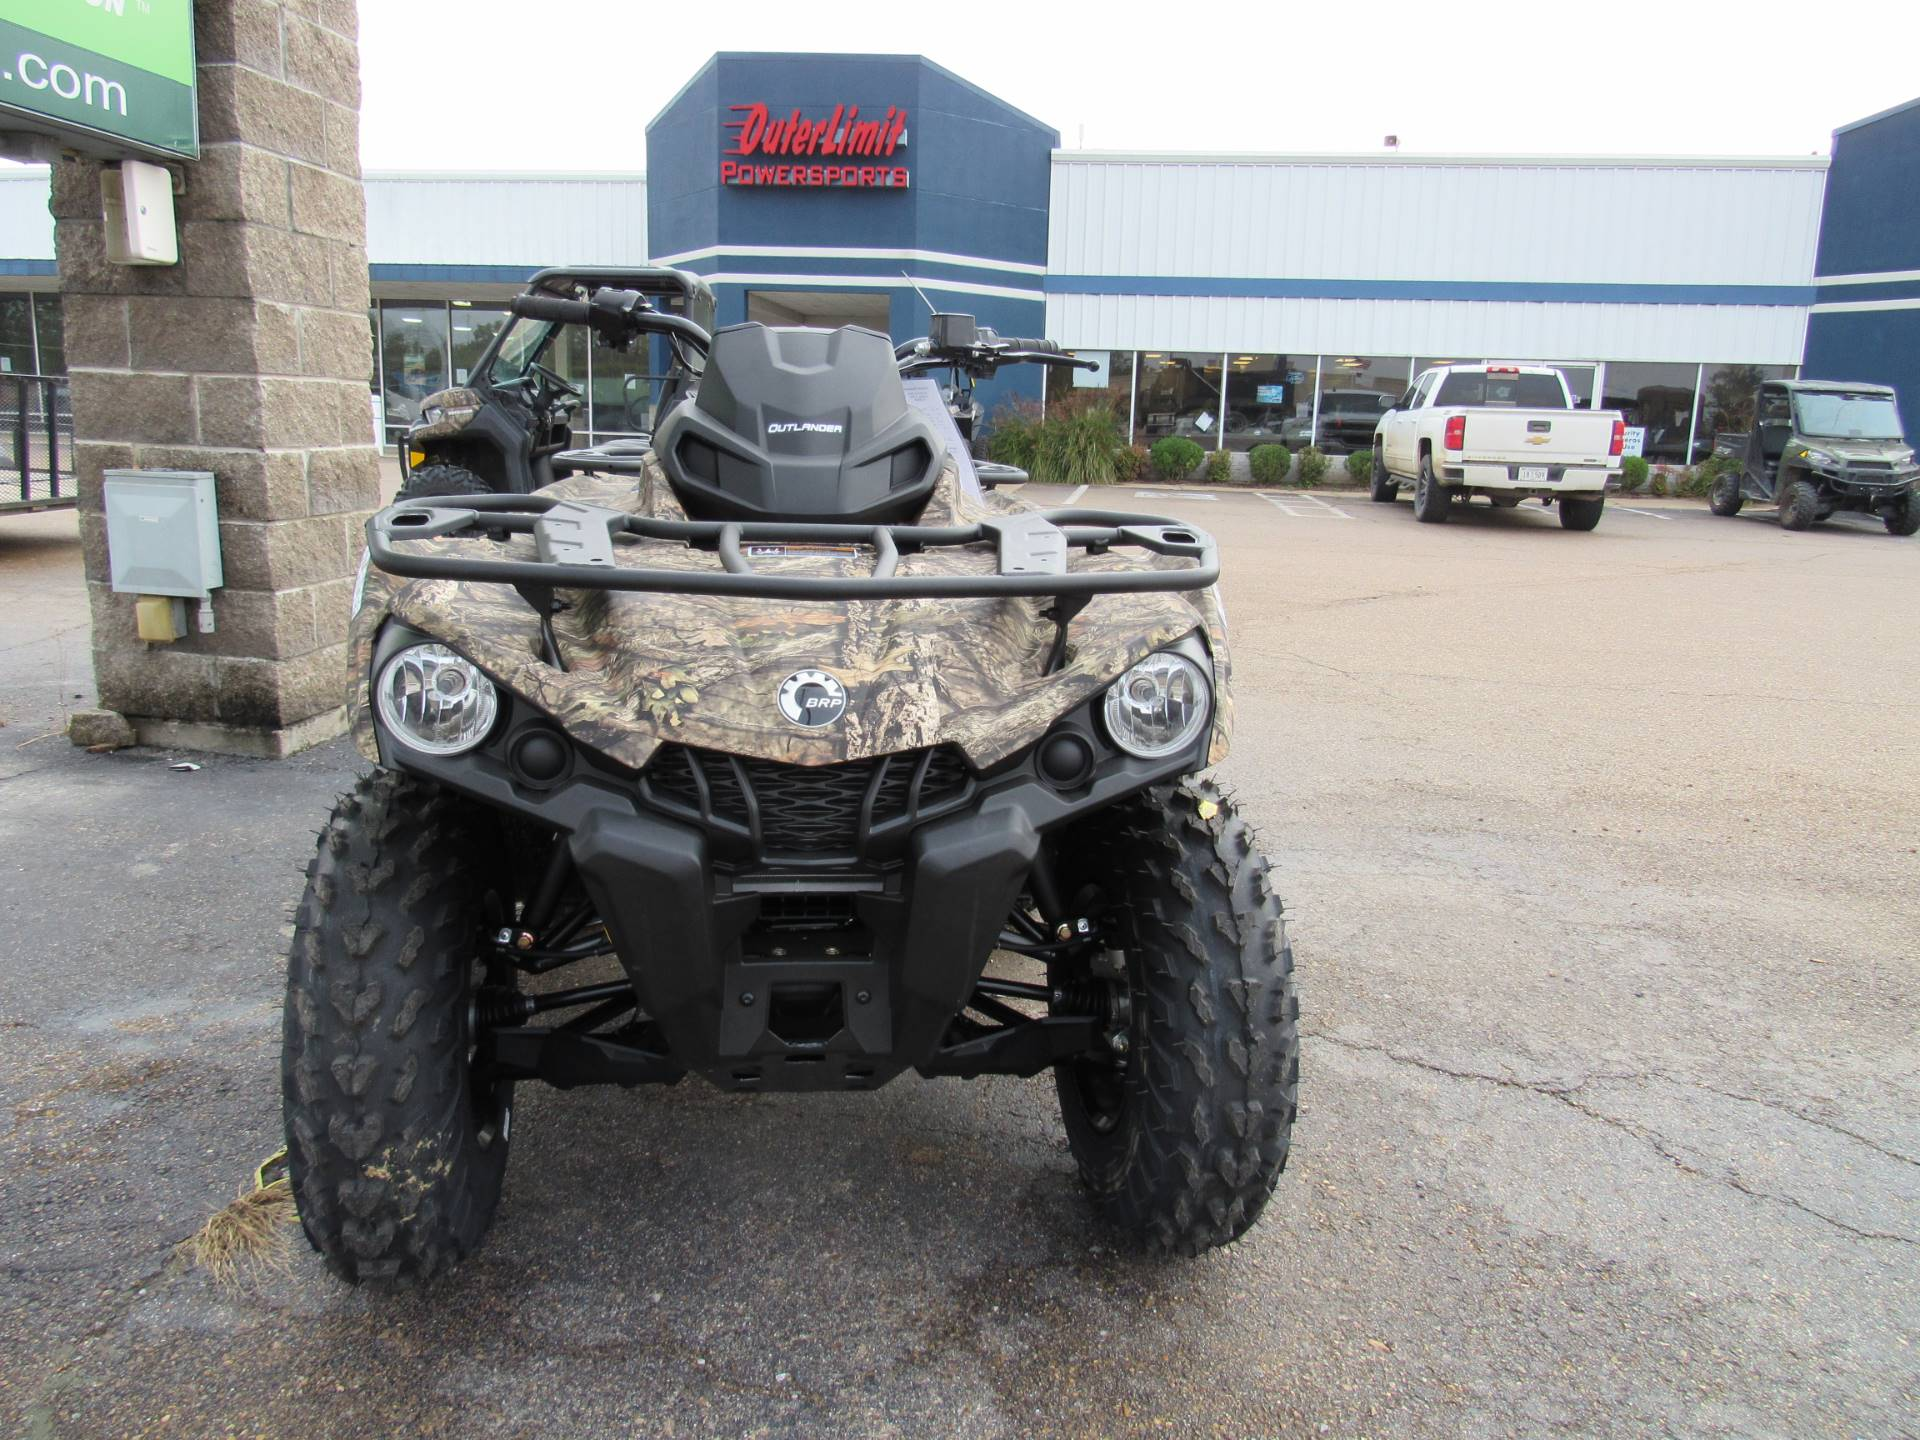 2021 Can-Am Outlander DPS 450 in Dyersburg, Tennessee - Photo 3